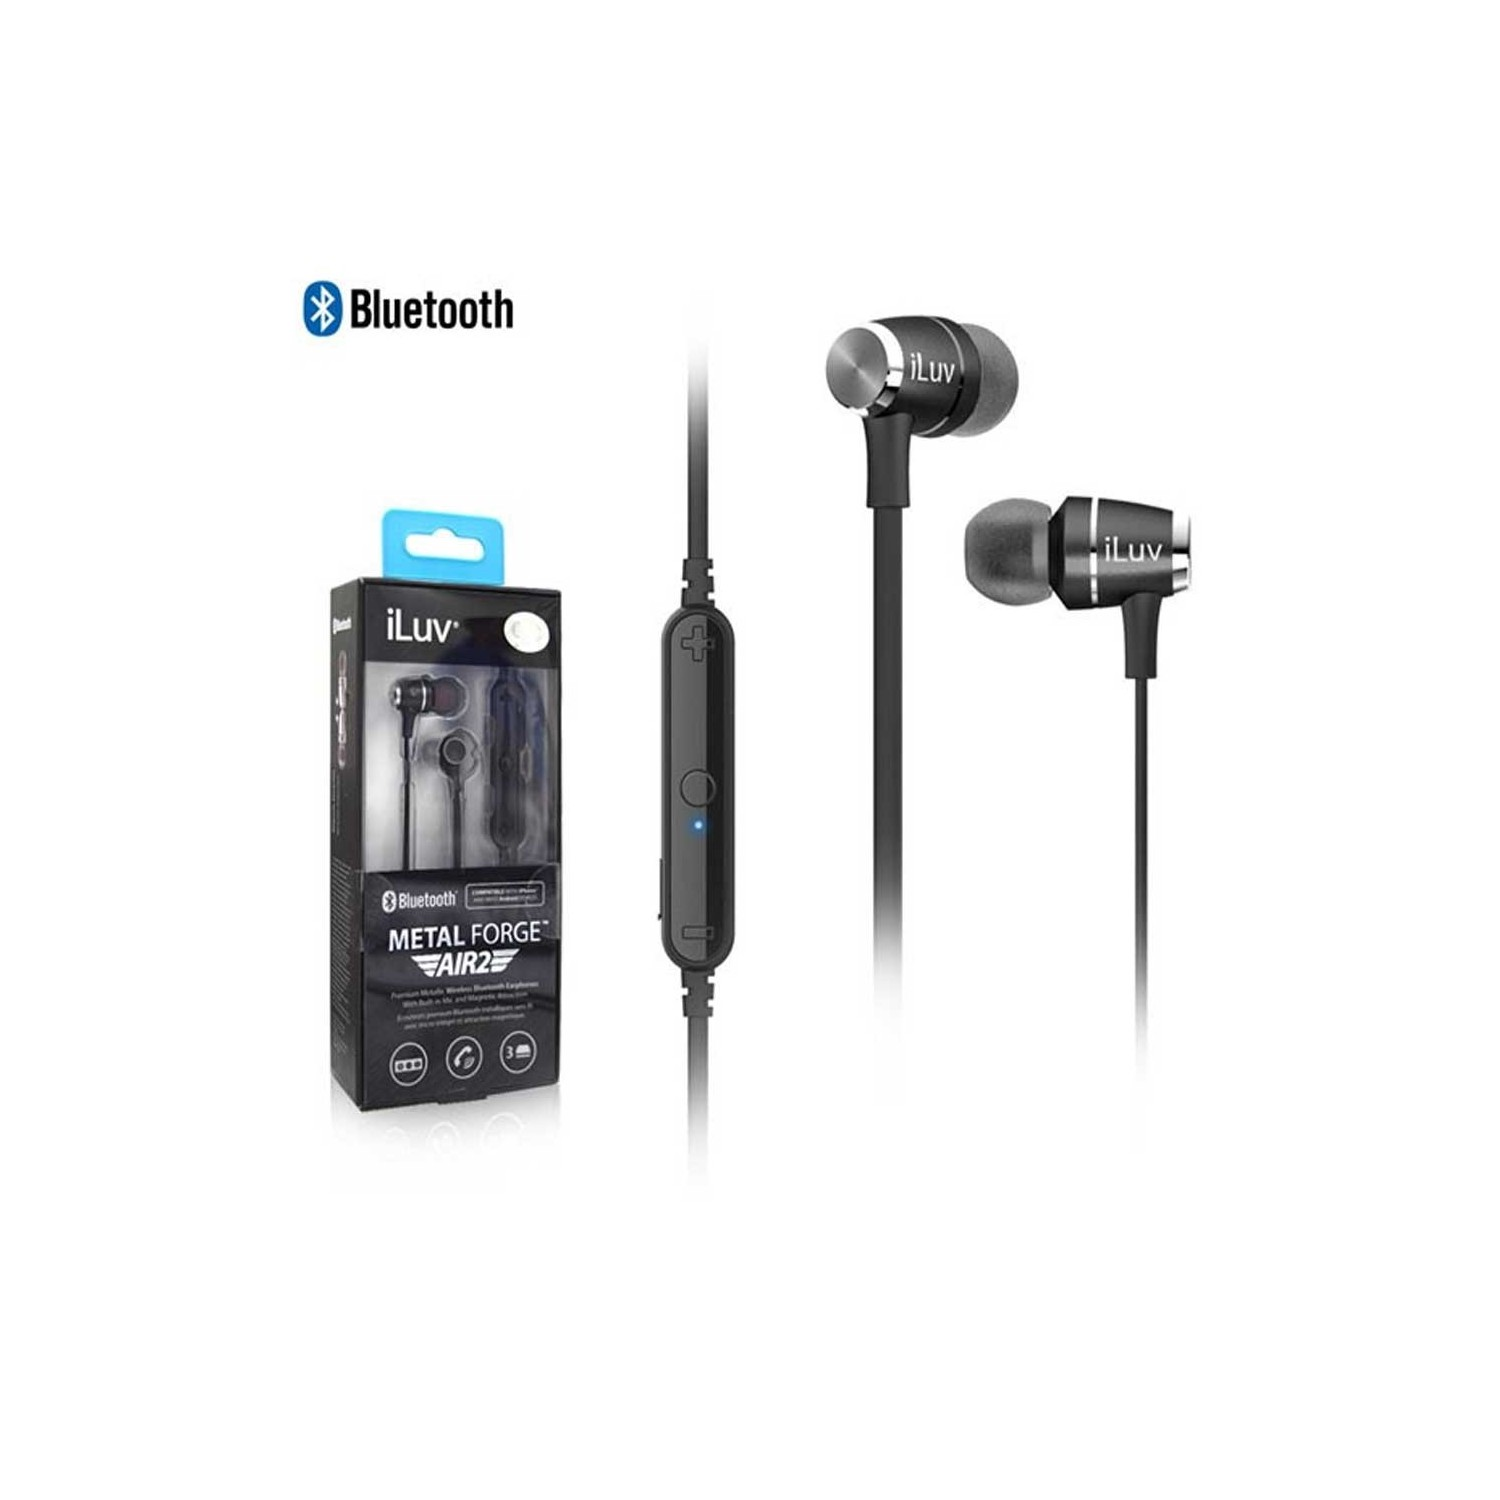 Bluetooth ILUV Wireless Stereo Headset Metal Forge Air2